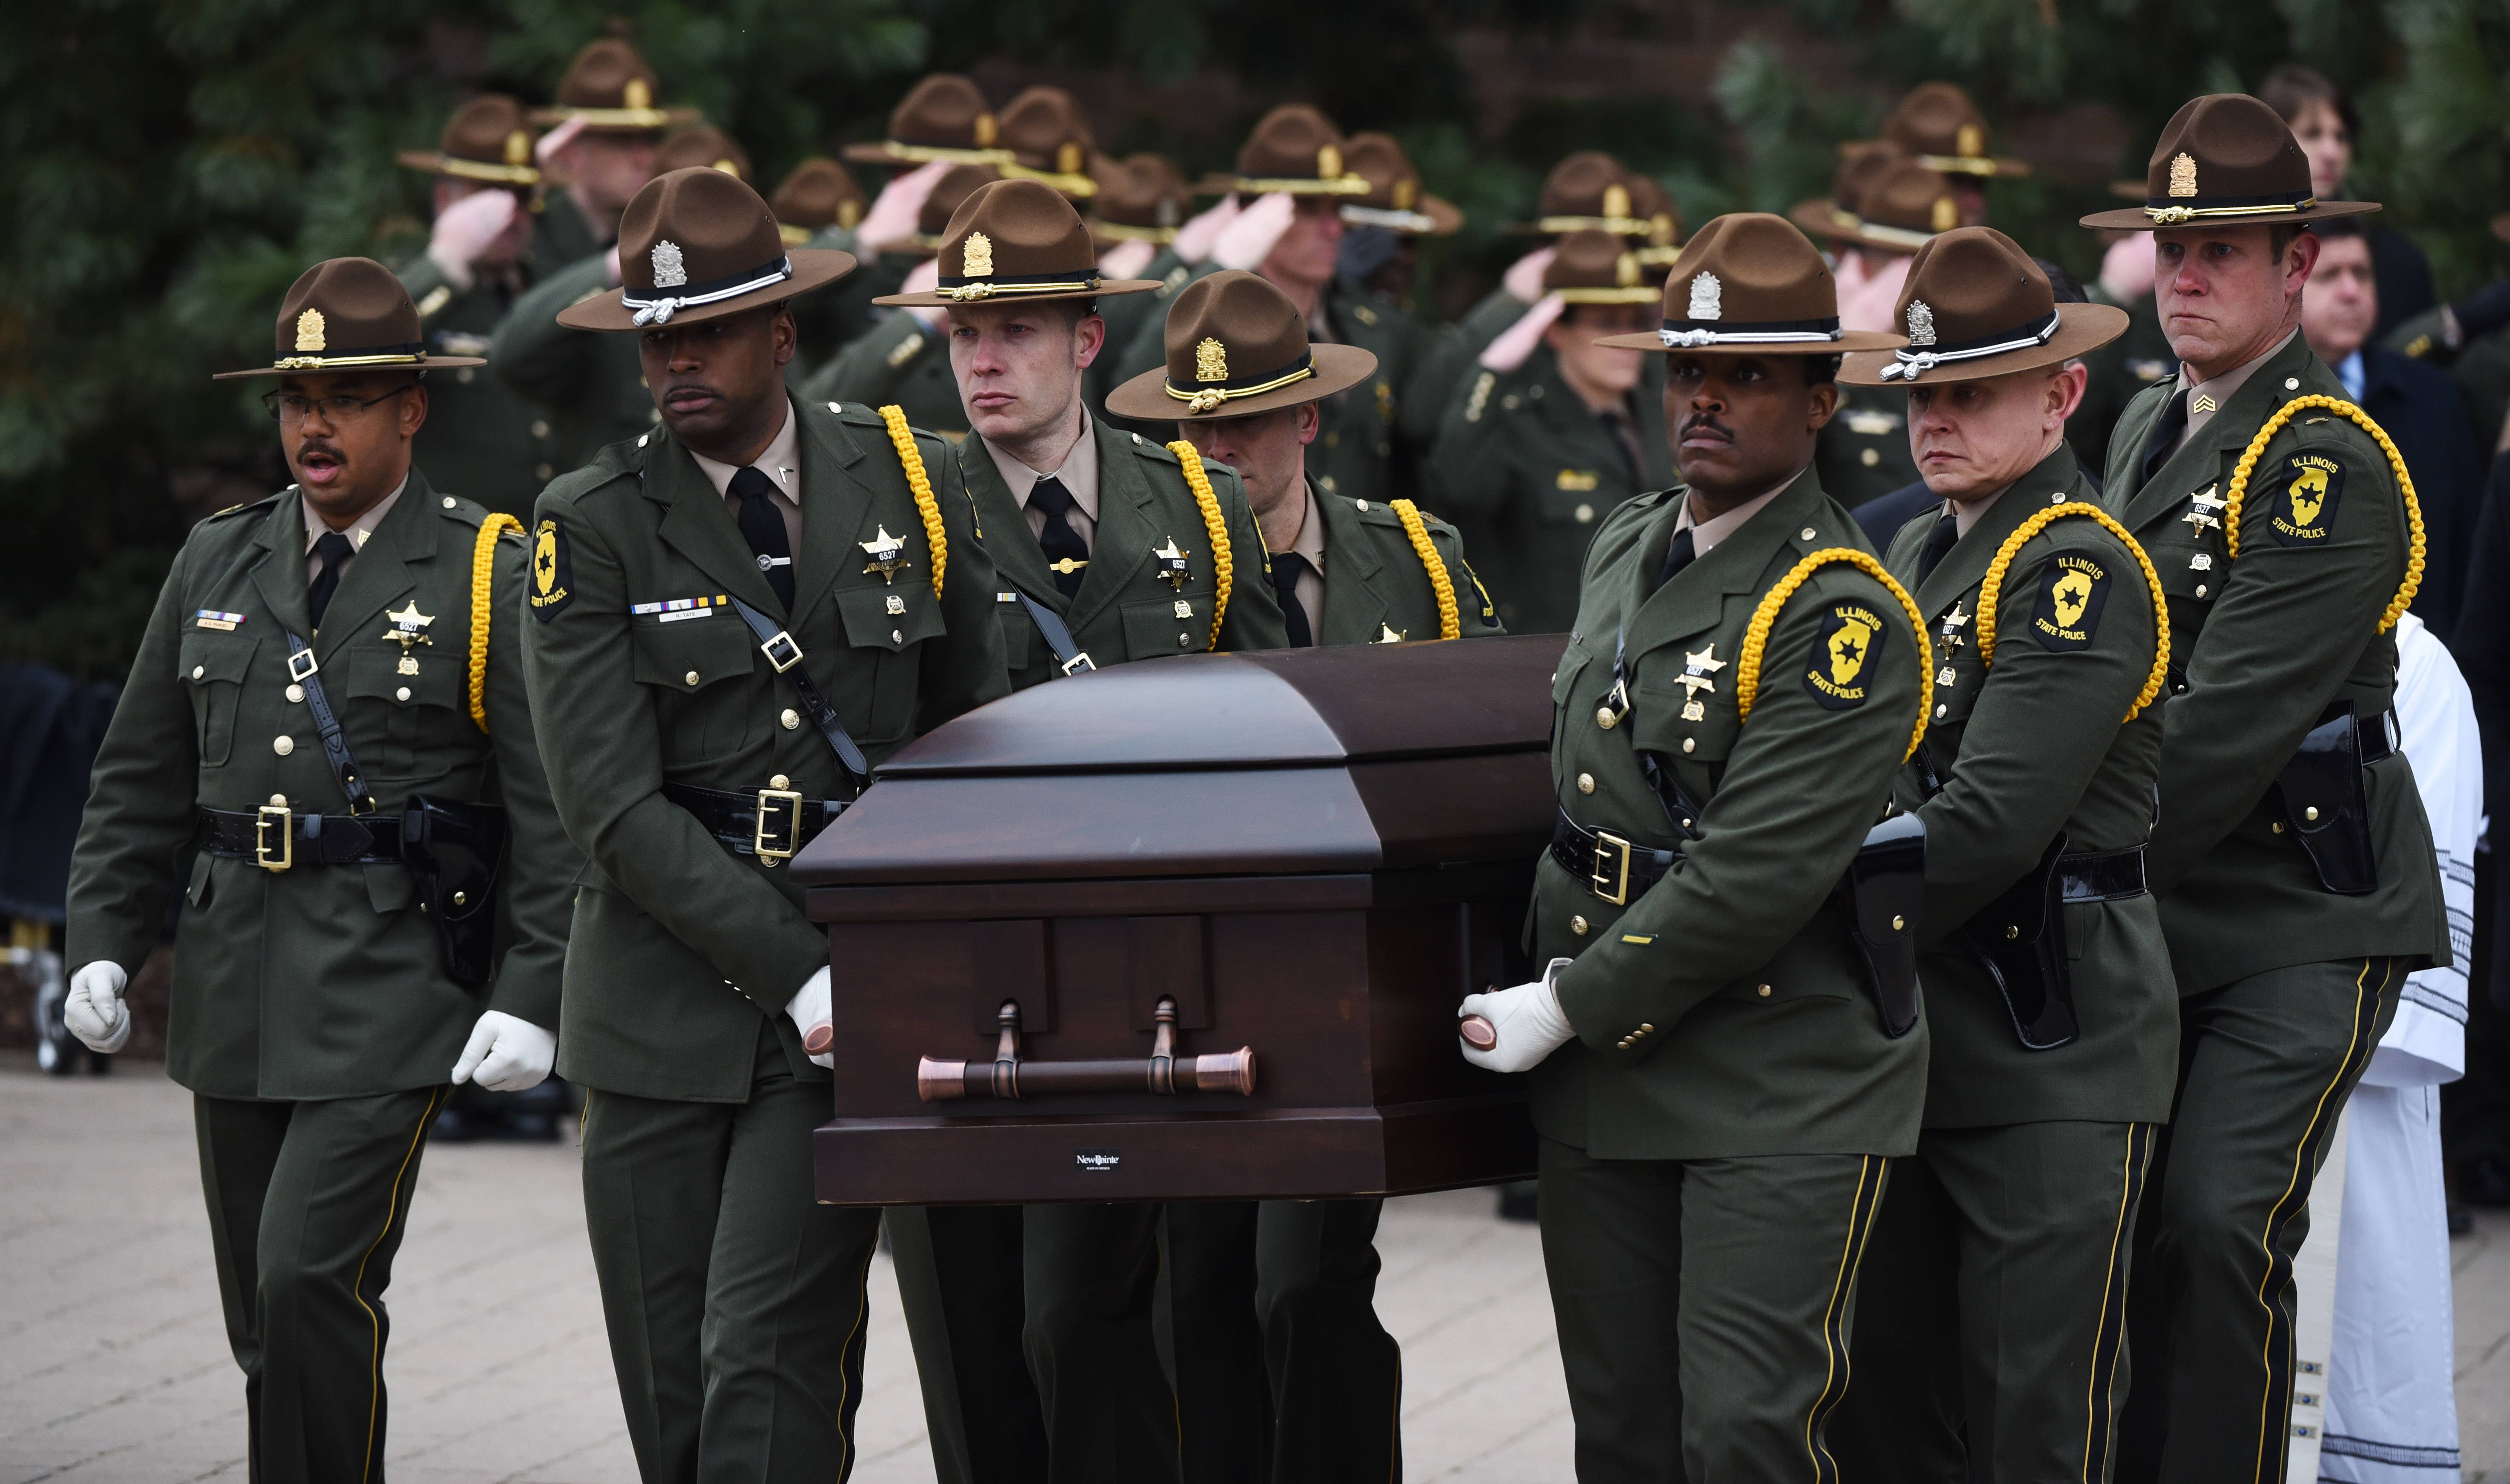 Images: Funeral for Illinois State Police Trooper Christopher Lambert